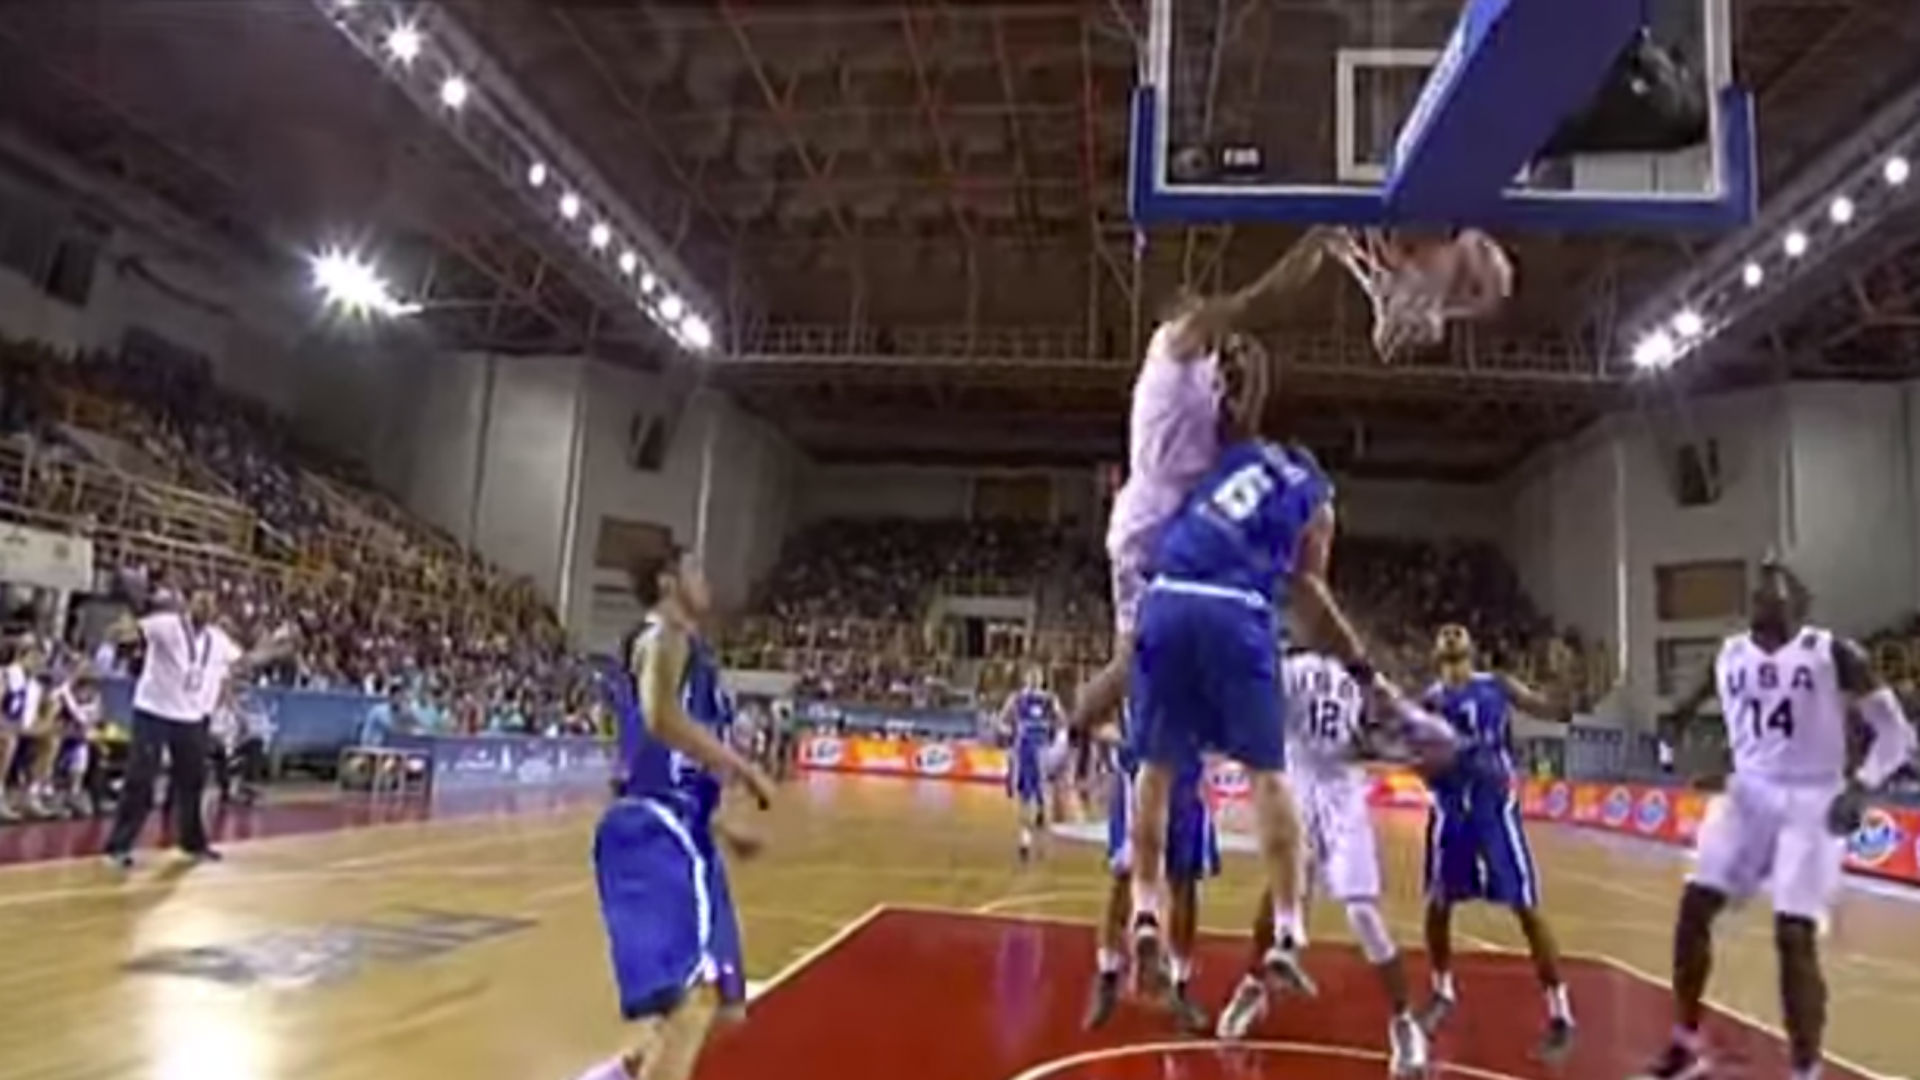 Jayson Tatum dunks all over Greek defender at FIBA World Championships